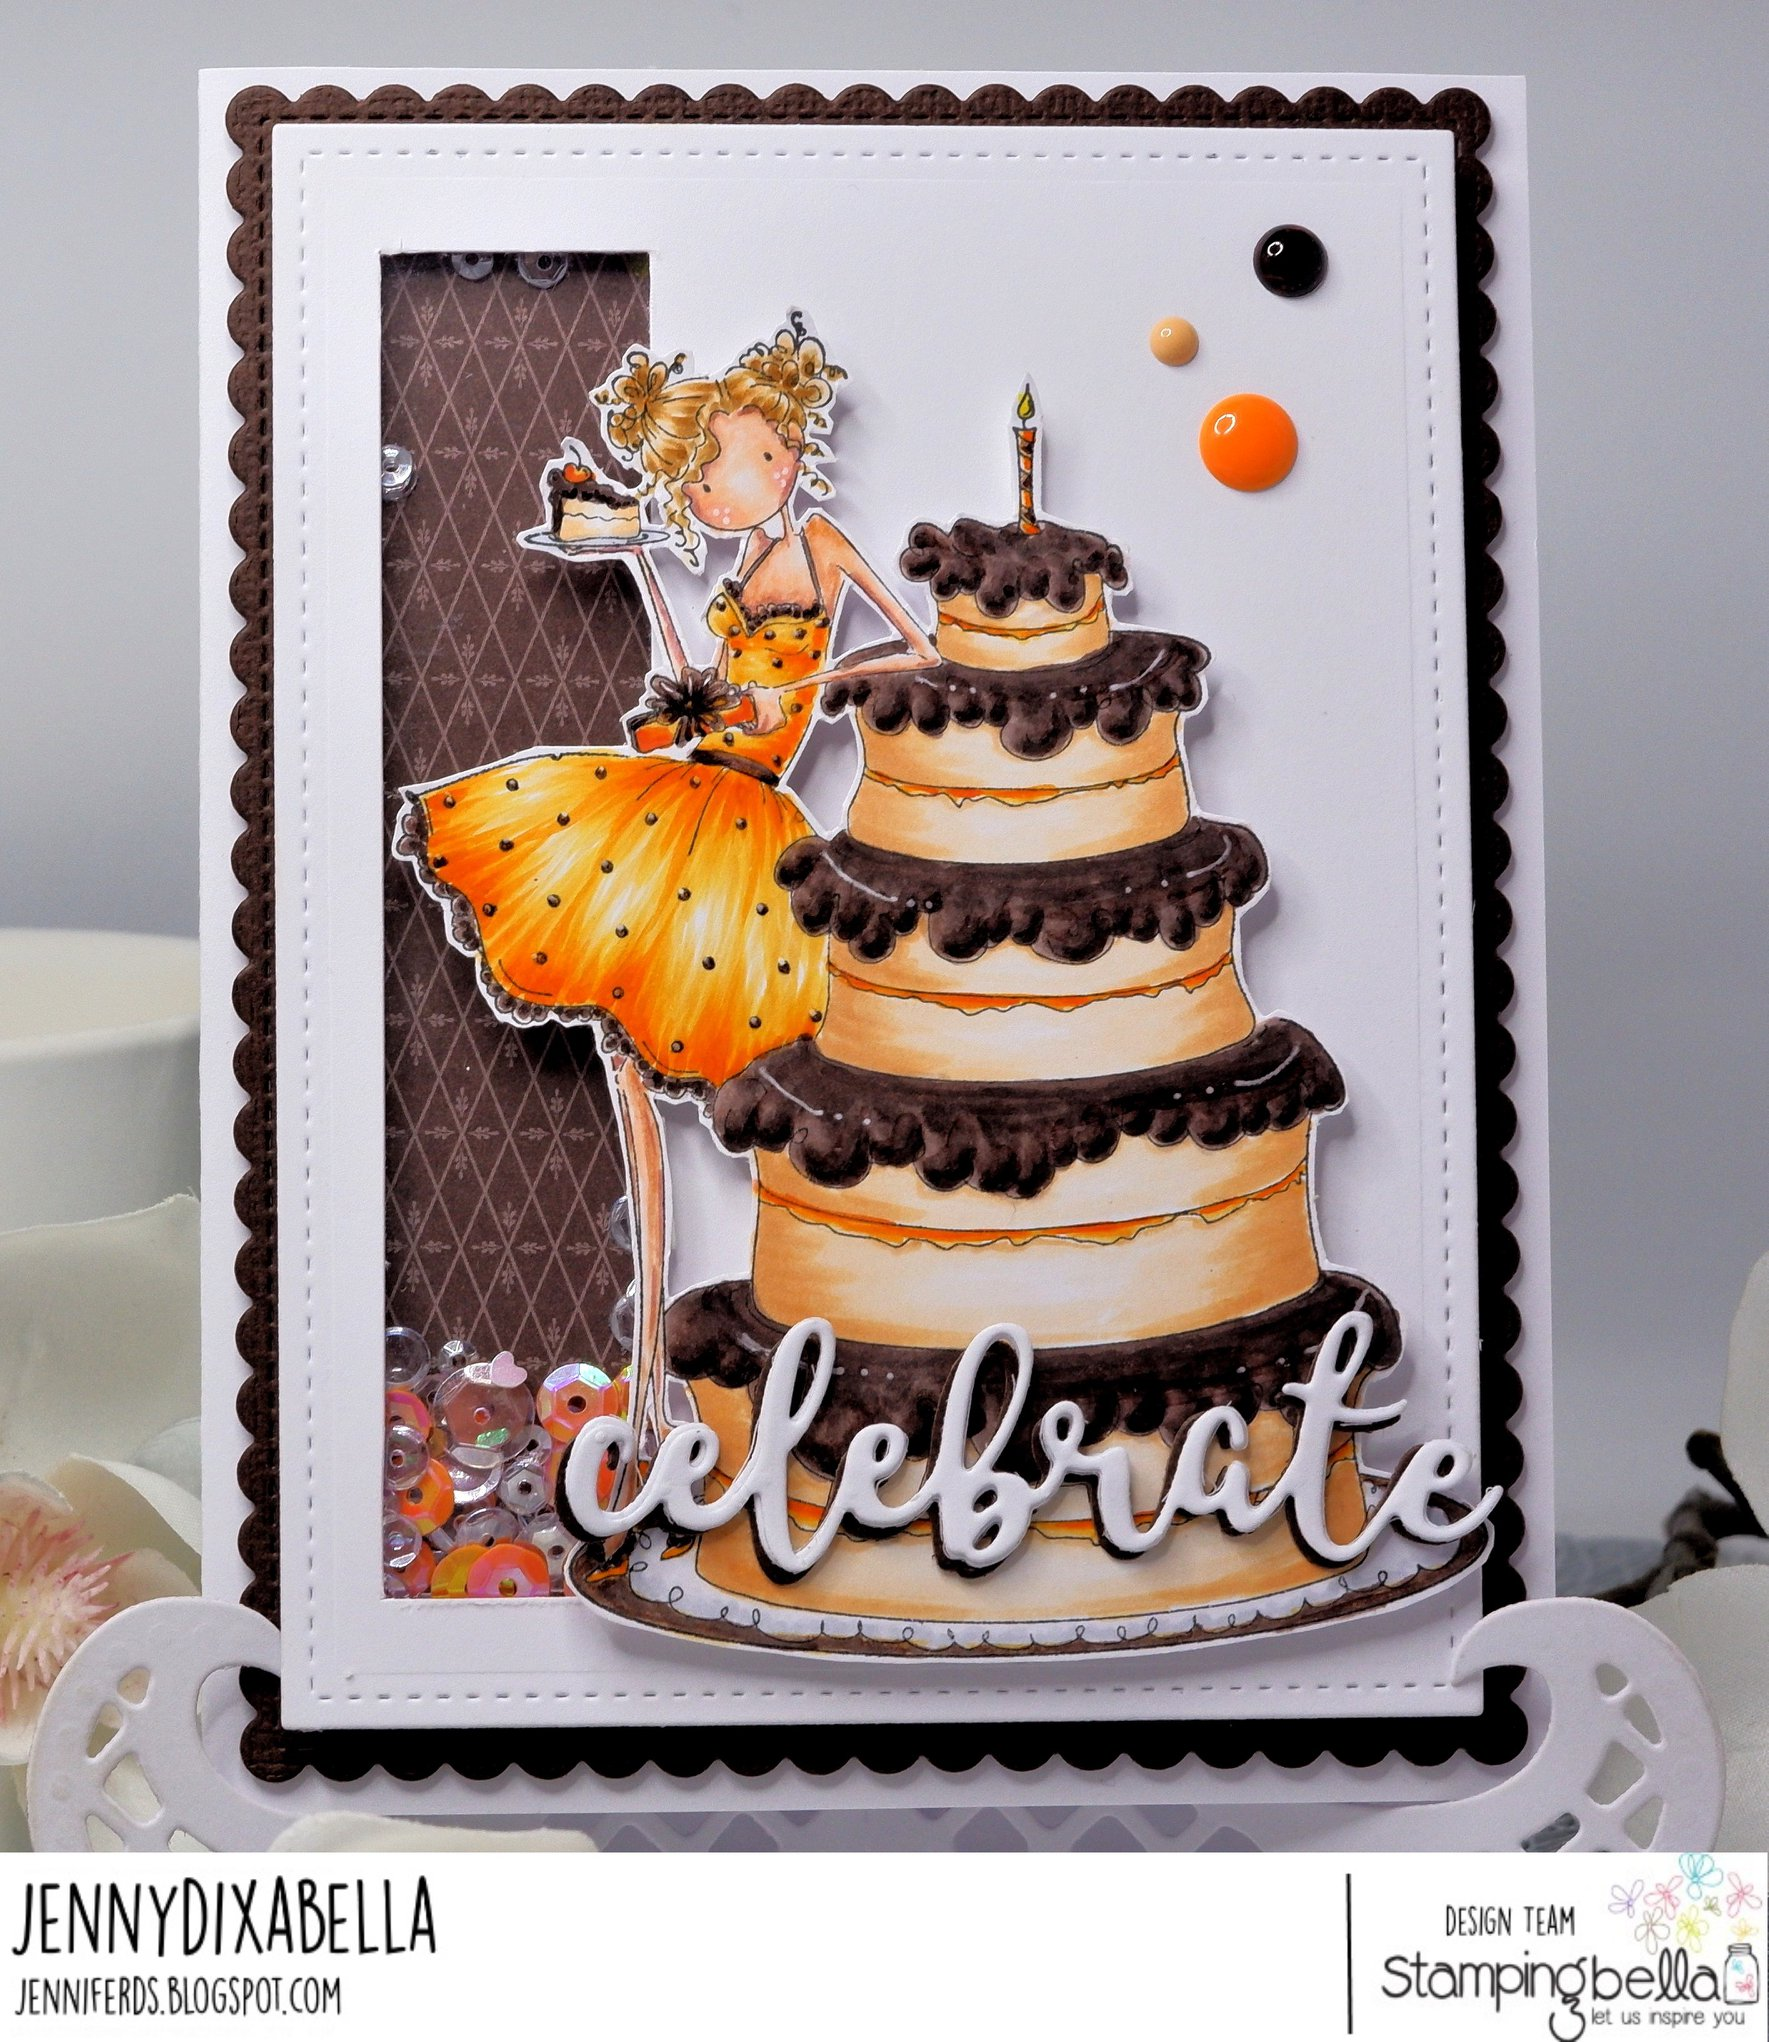 www.stampingbella.com: Rubber stamp used: UPTPOWN GIRL BIANCA and her BIG CAKE. card by JENNY DIX